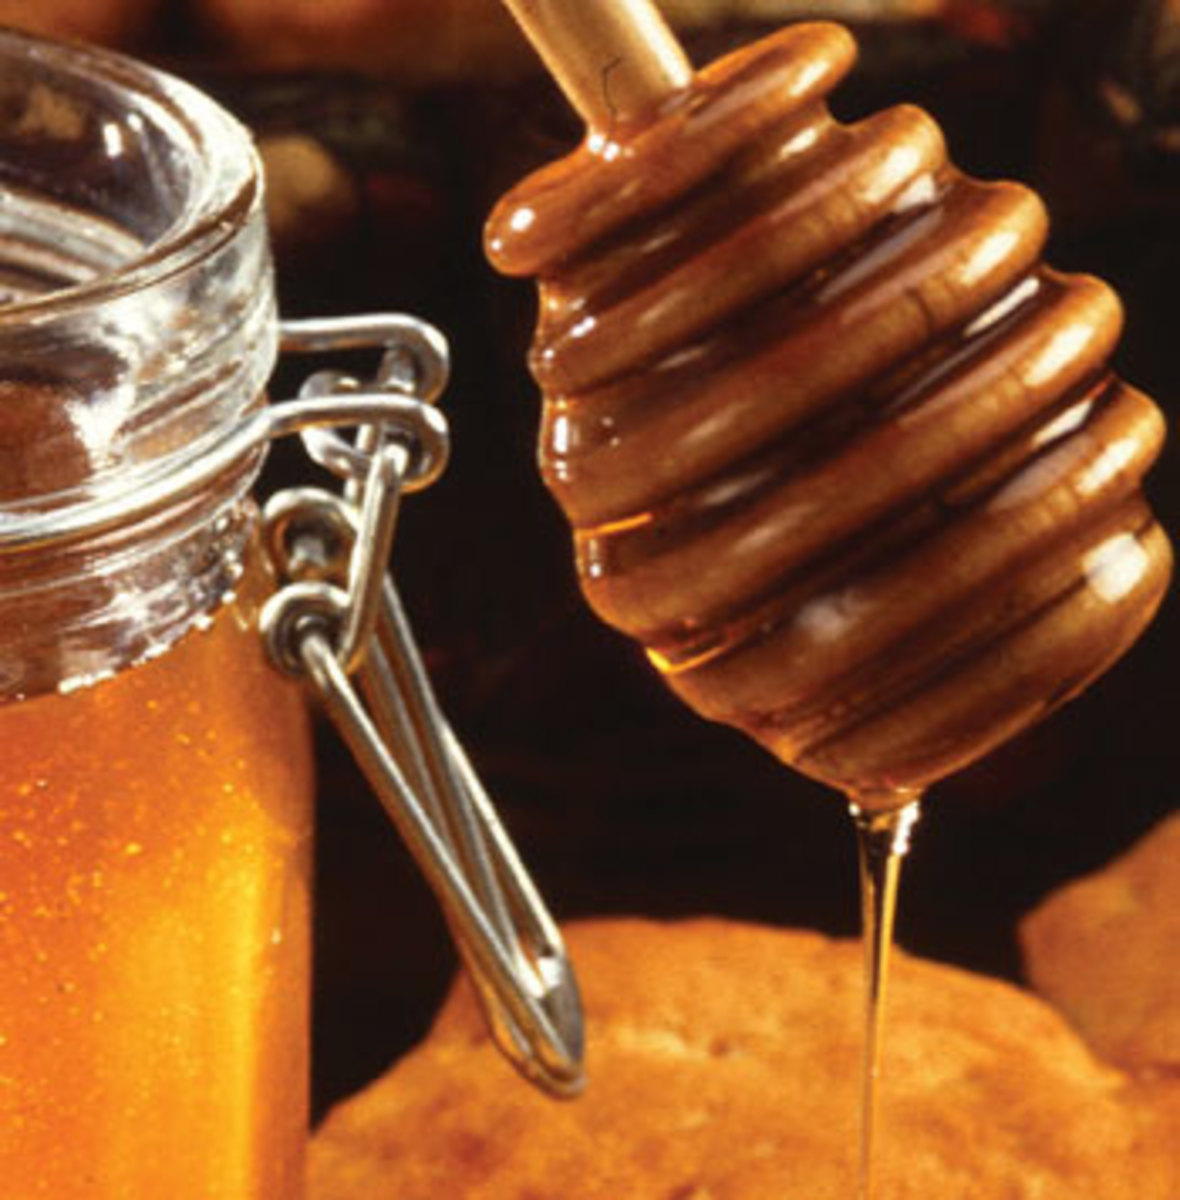 Remedies for Using Honey and Vinegar to Heal Wounds